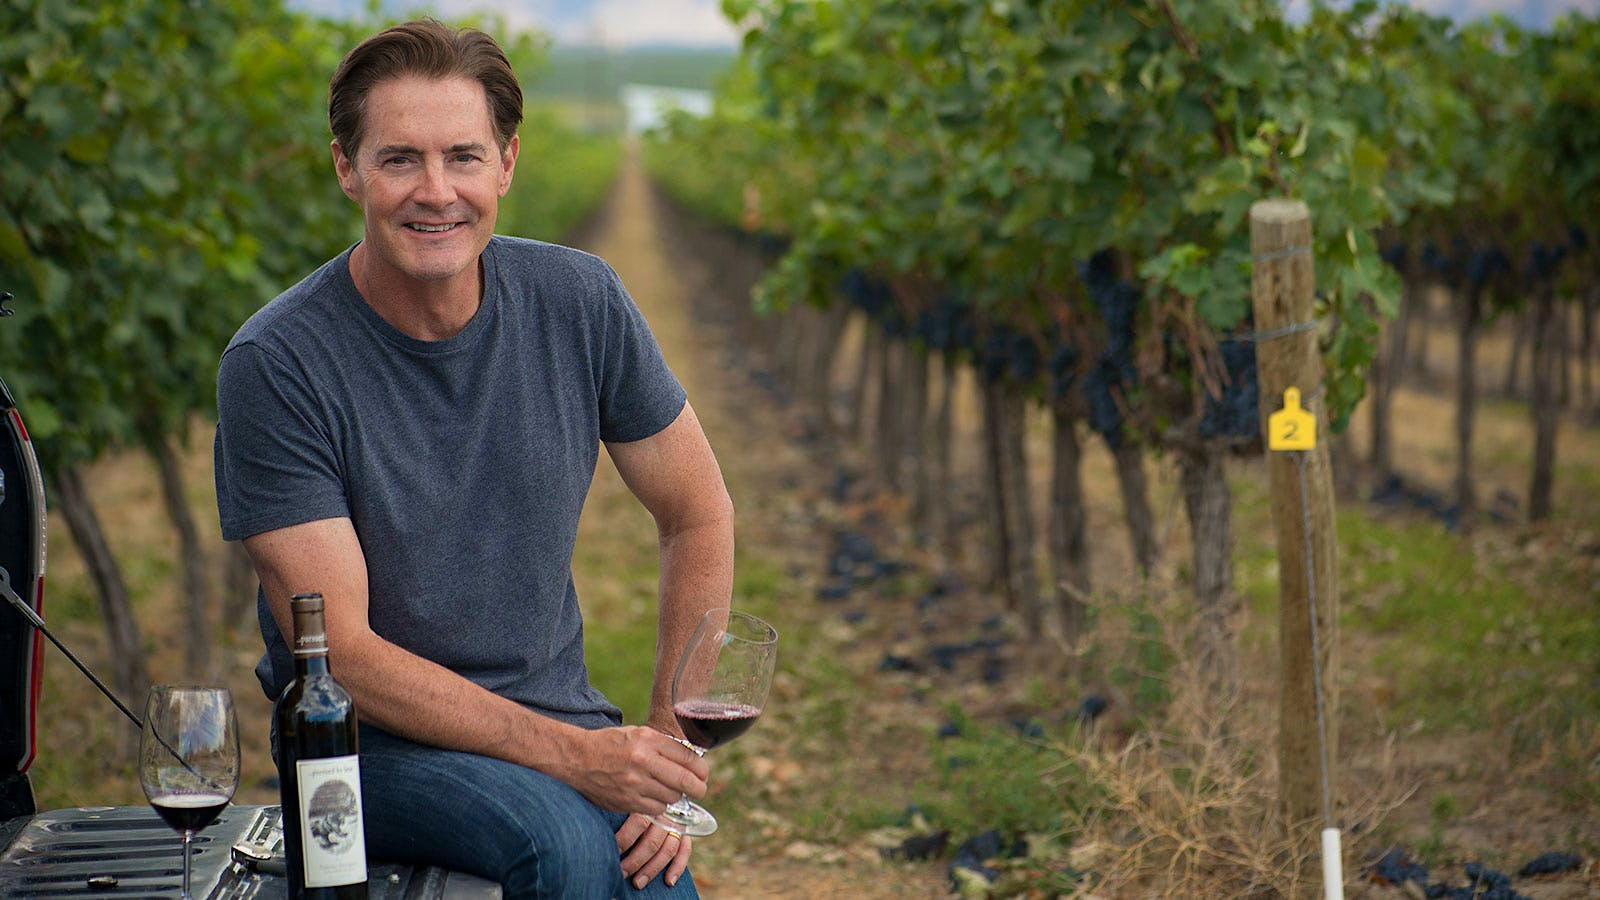 Finding Home Again: Kyle MacLachlan Chats Live About Making Wine Where He Grew Up